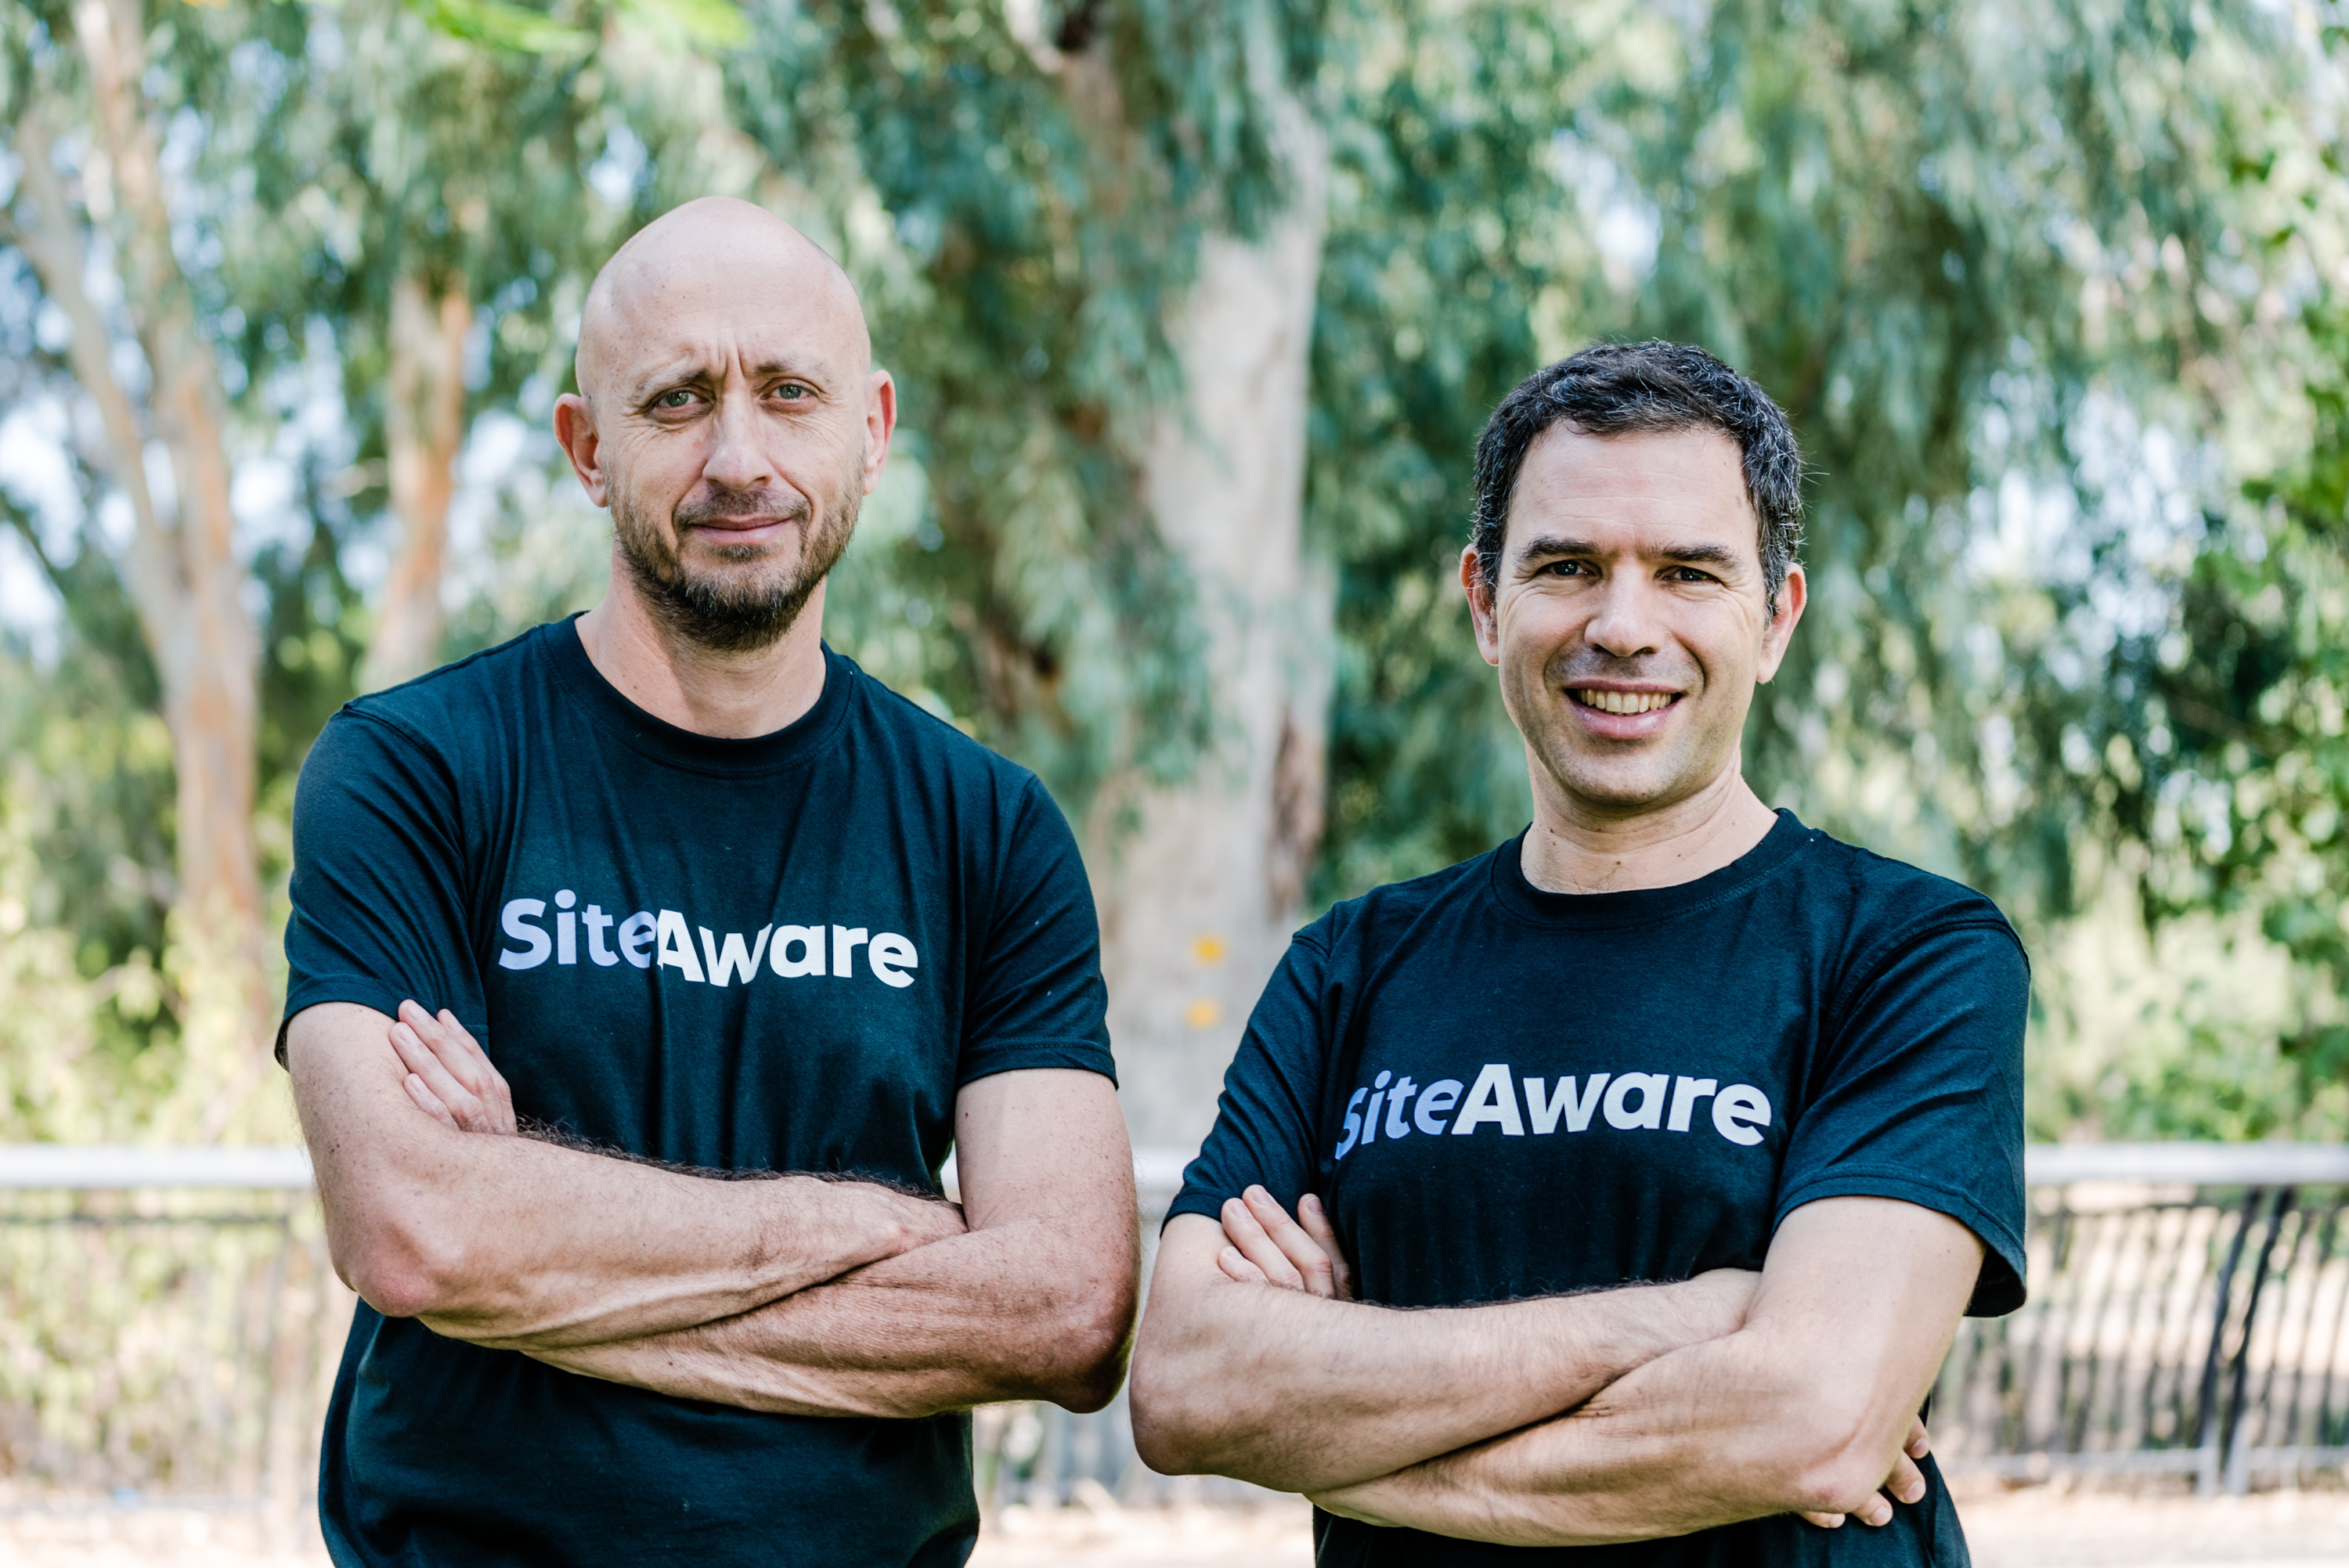 Robert Bosch Venture Capital co-leads USD 10 million investment round in SiteAware